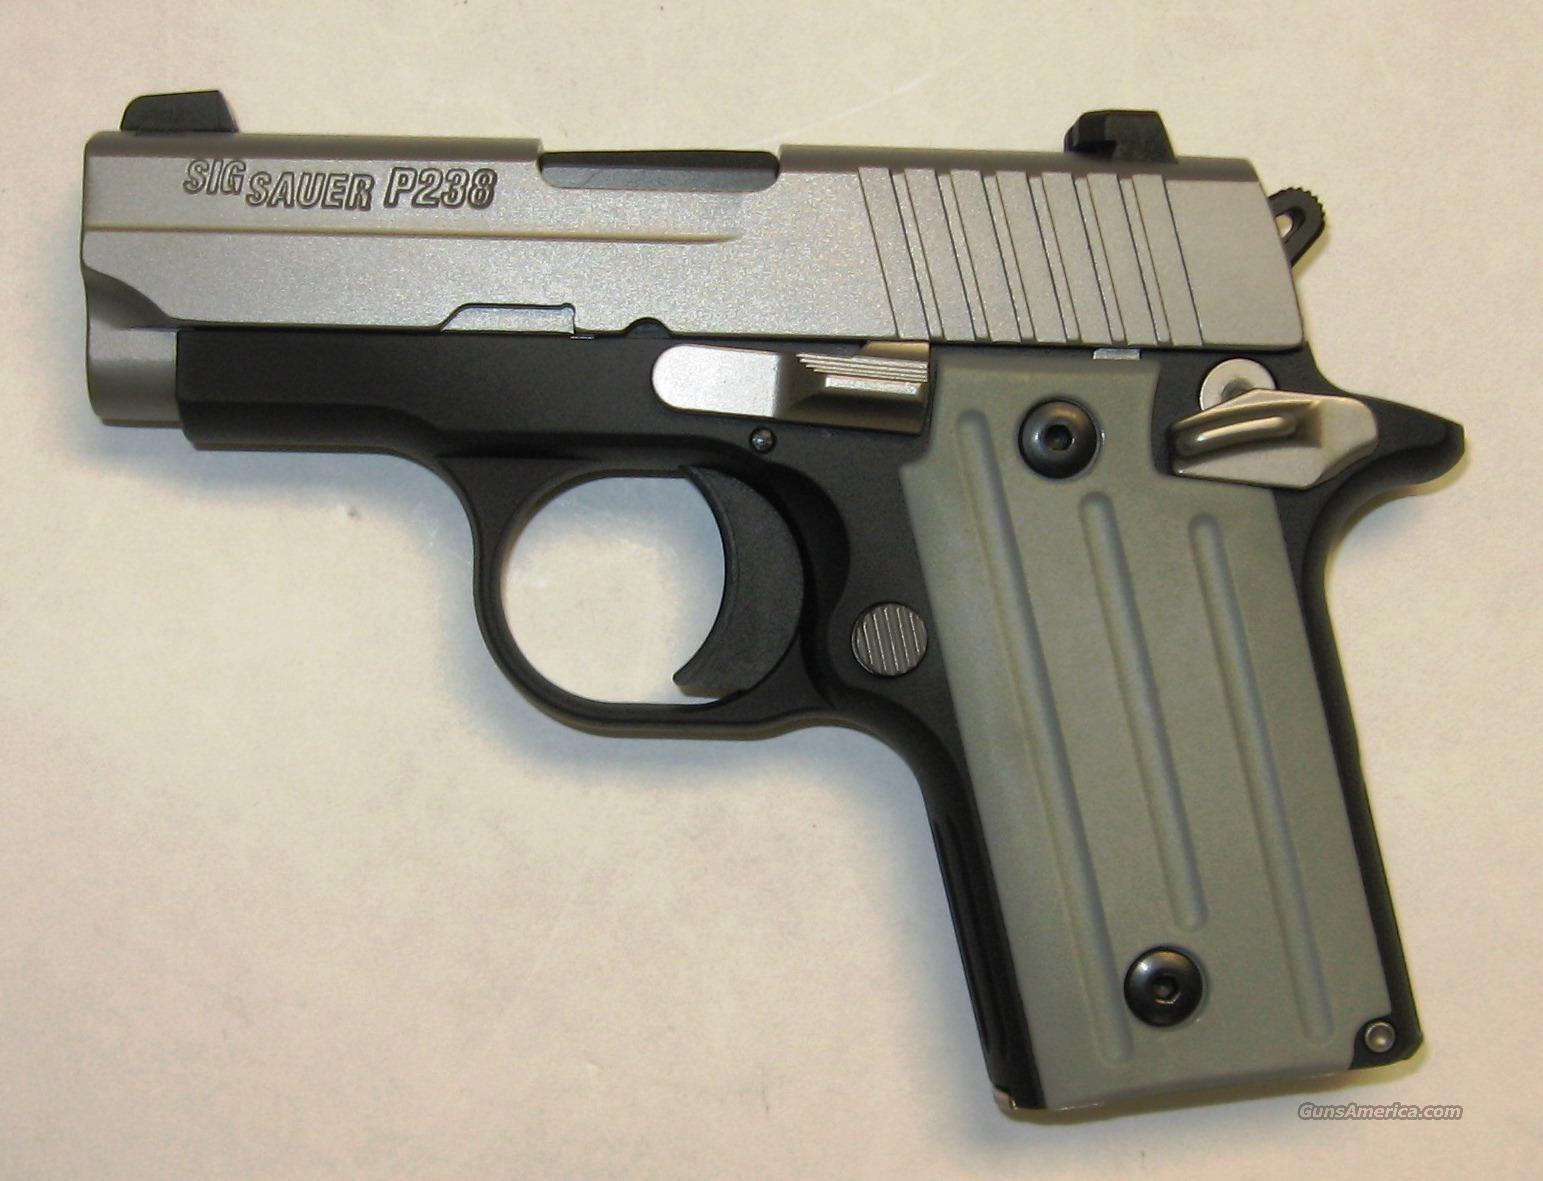 Sig Sauer P238 Two-Tone w/ Nightsights  Guns > Pistols > Sig - Sauer/Sigarms Pistols > P238